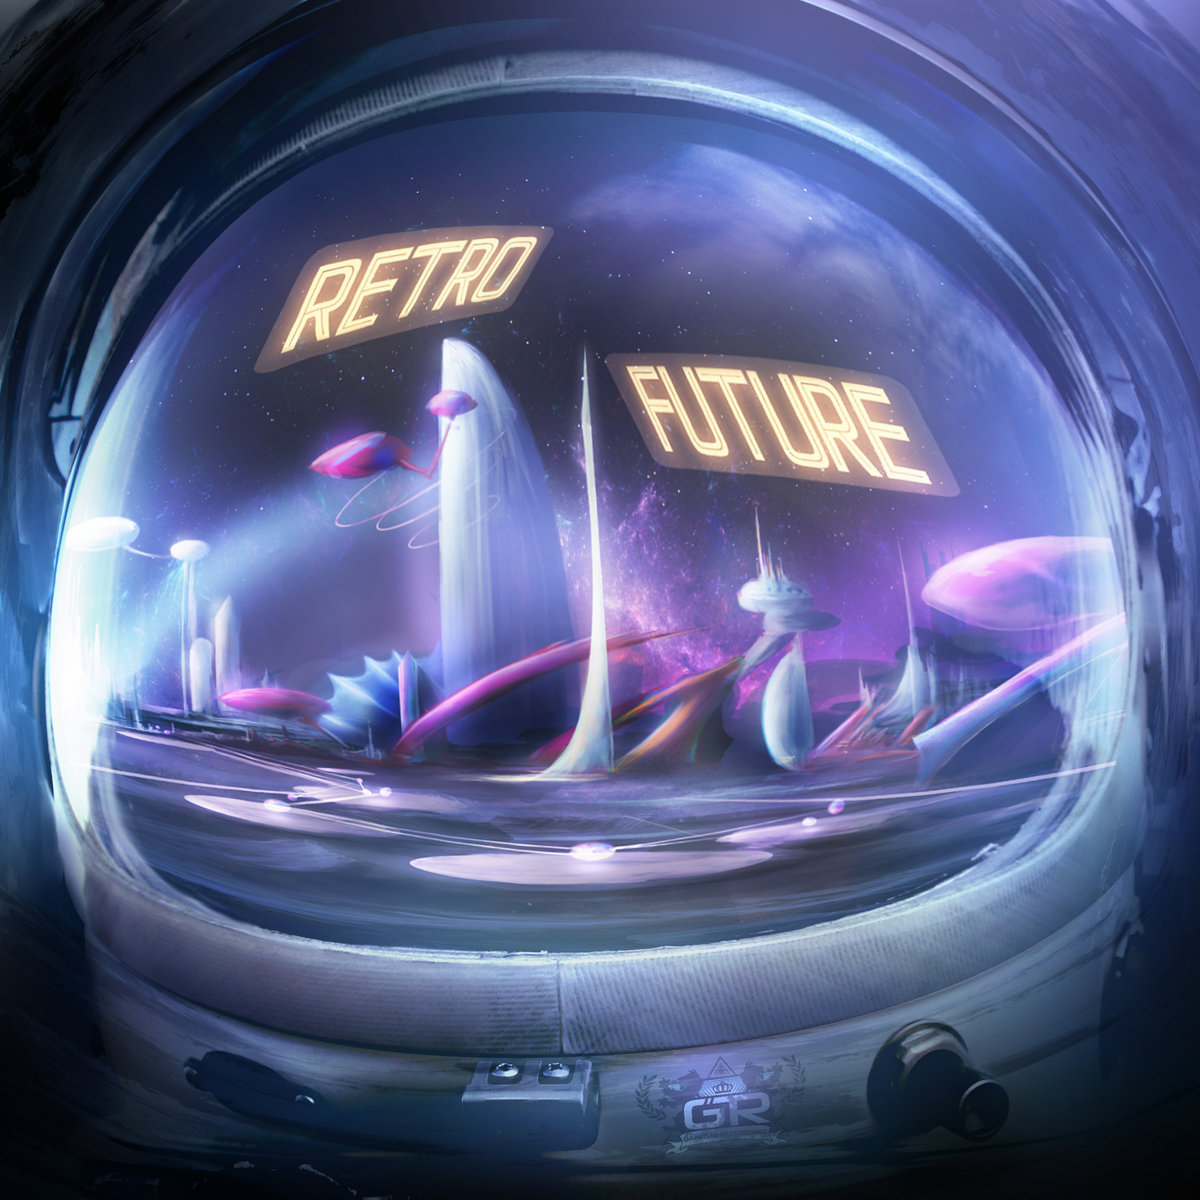 Retro future gravitas recordings for 1234 get on the dance floor song mp3 download